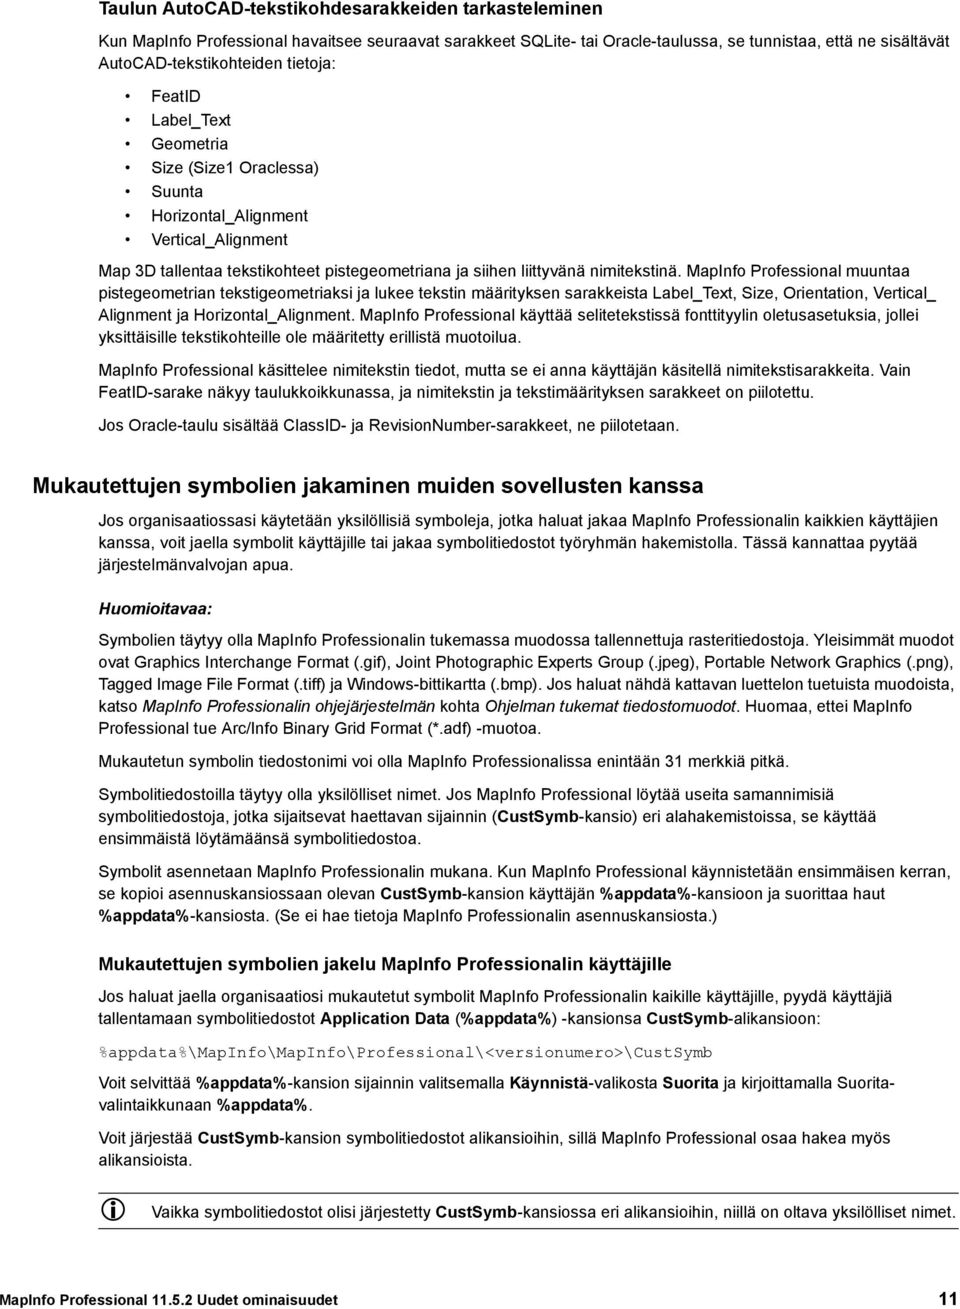 MapInfo Professional muuntaa pistegeometrian tekstigeometriaksi ja lukee tekstin määrityksen sarakkeista Label_Text, Size, Orientation, Vertical_ Alignment ja Horizontal_Alignment.